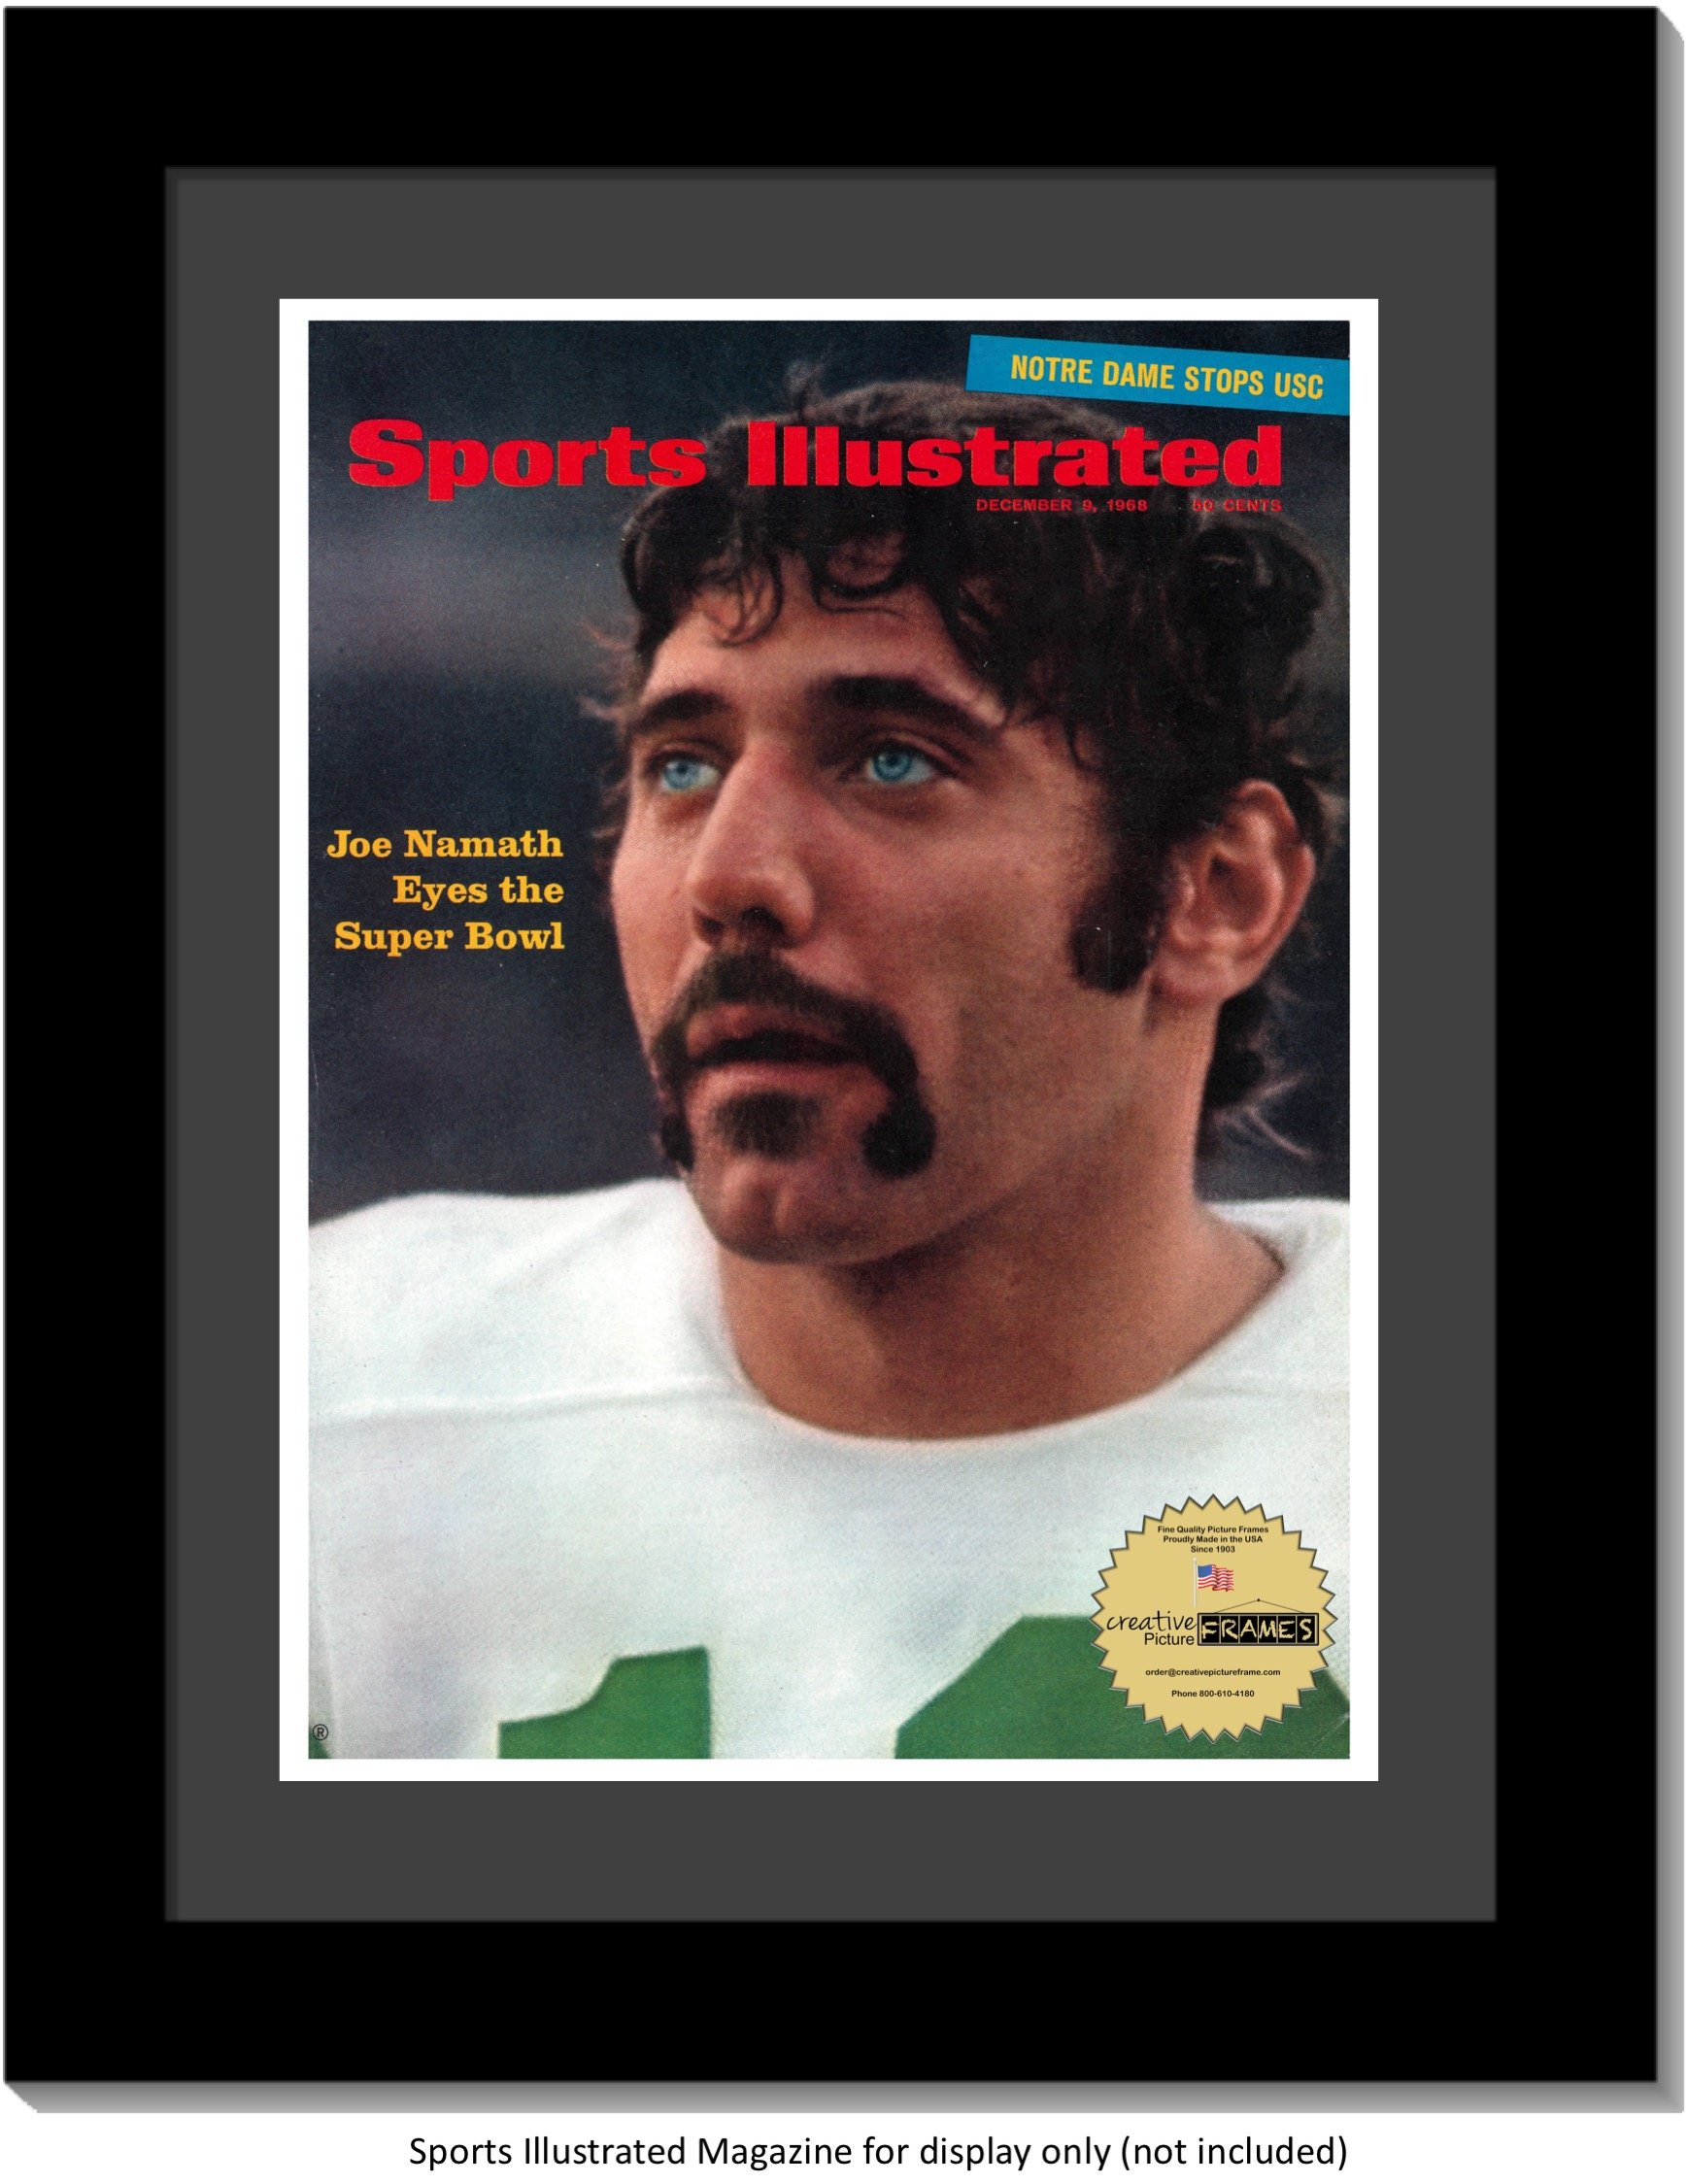 CreativePF [1114bk-b] Collectors Edition Sports Illustrated Frame, Displays up to 1970 Magazines Measuring 8 1/4 by 11-inches w/Black Mat-Measure Your Magazine